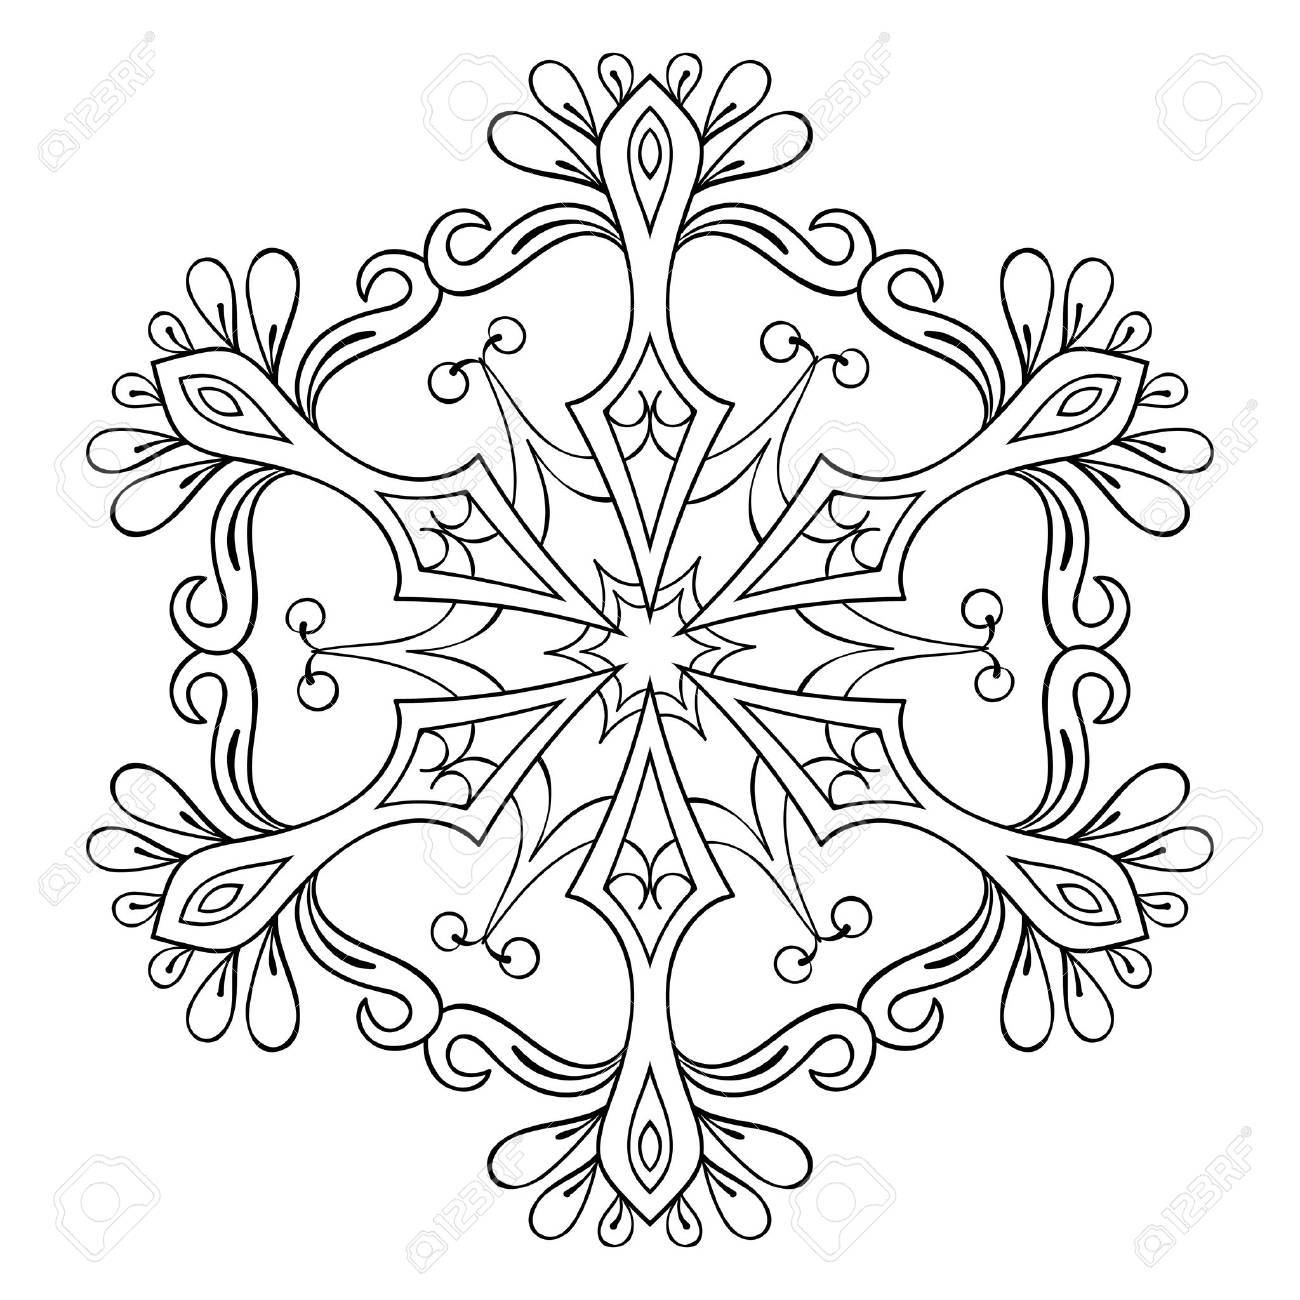 Vector Snow Flake In Zentangle Style Mandala For Adult Coloring